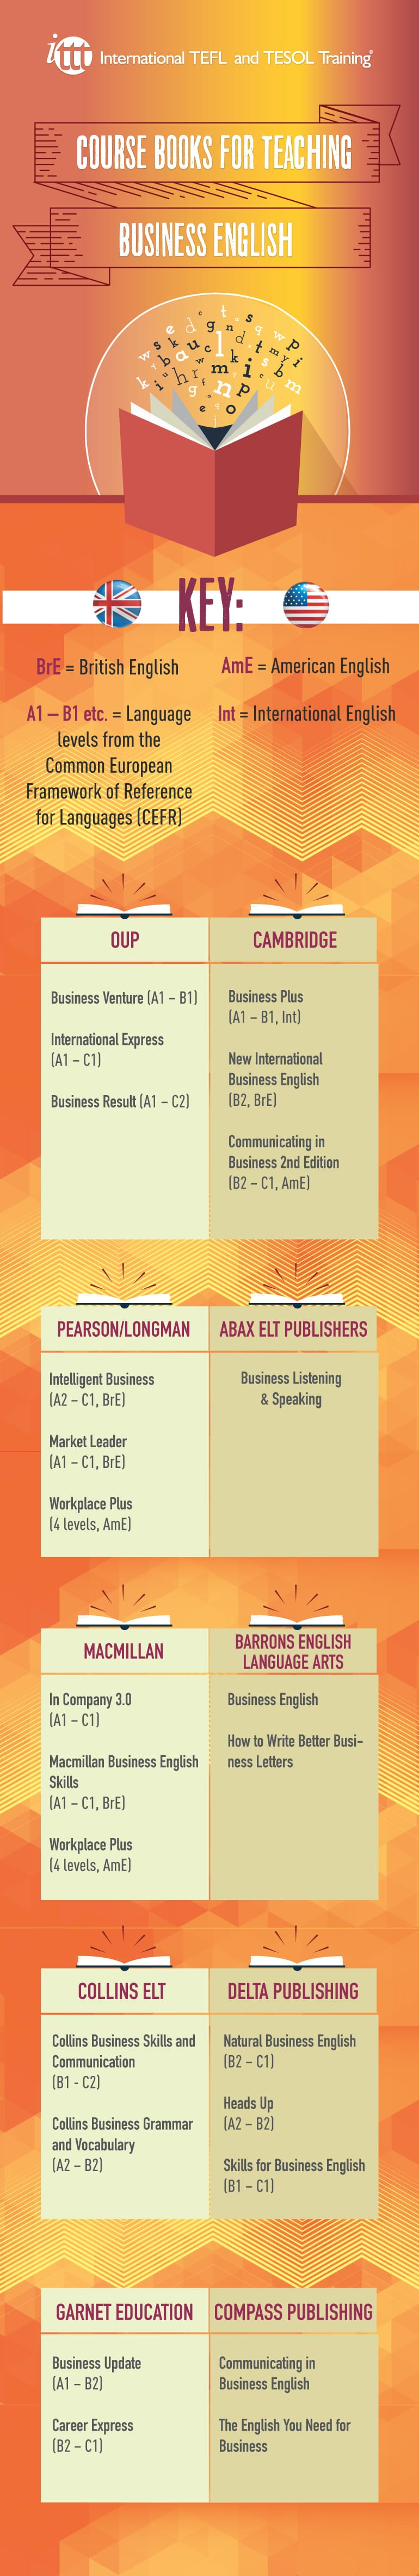 Course Books for Business English